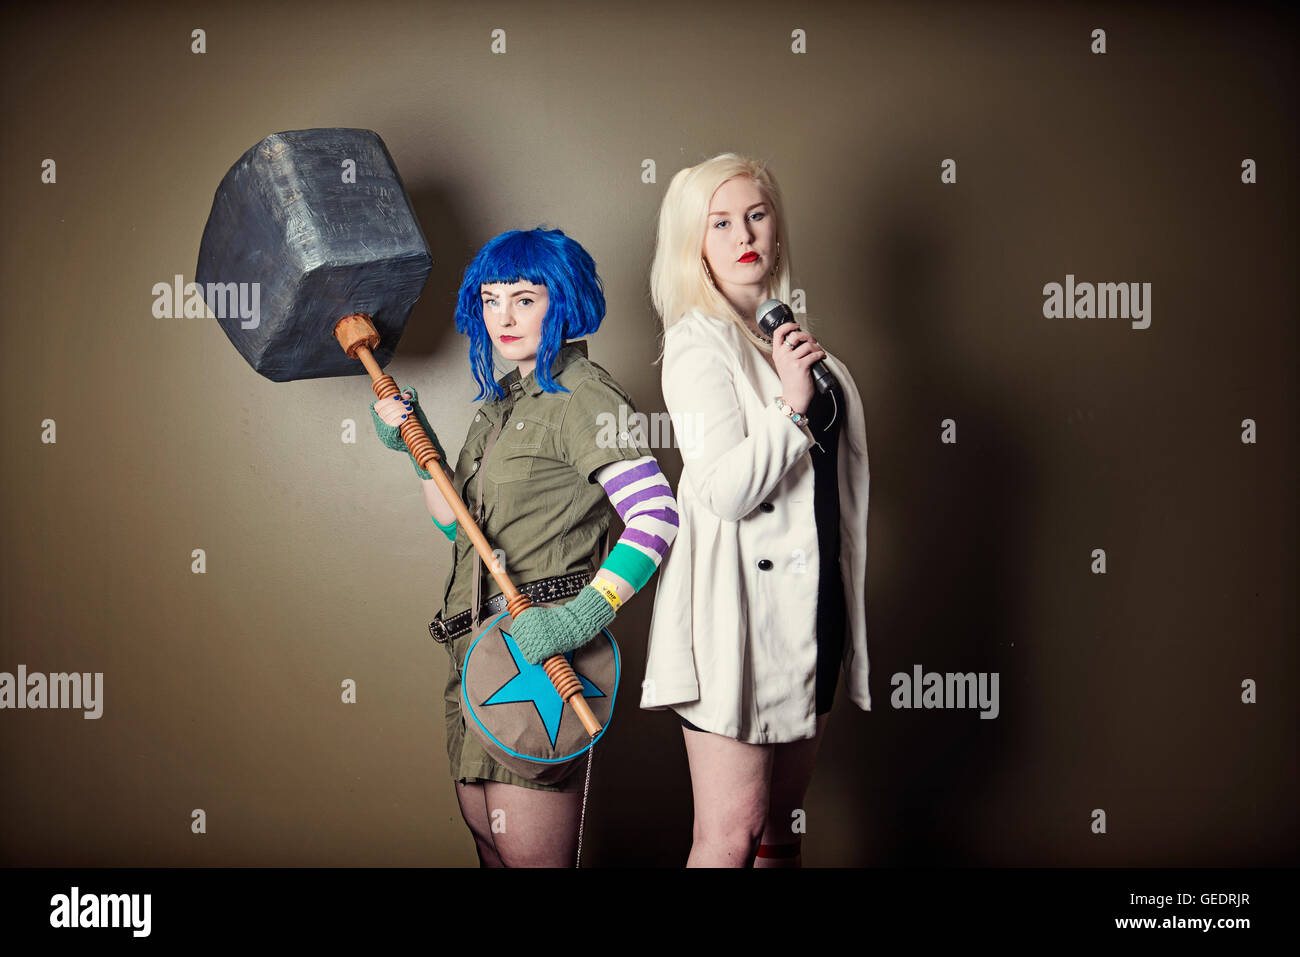 Cosplayers dressed as characteru0027s from the film Scott Pilgrim vs. the World pose for photographs at a Comic Con convention.  sc 1 st  Alamy & Cosplayers dressed as characteru0027s from the film Scott Pilgrim vs ...